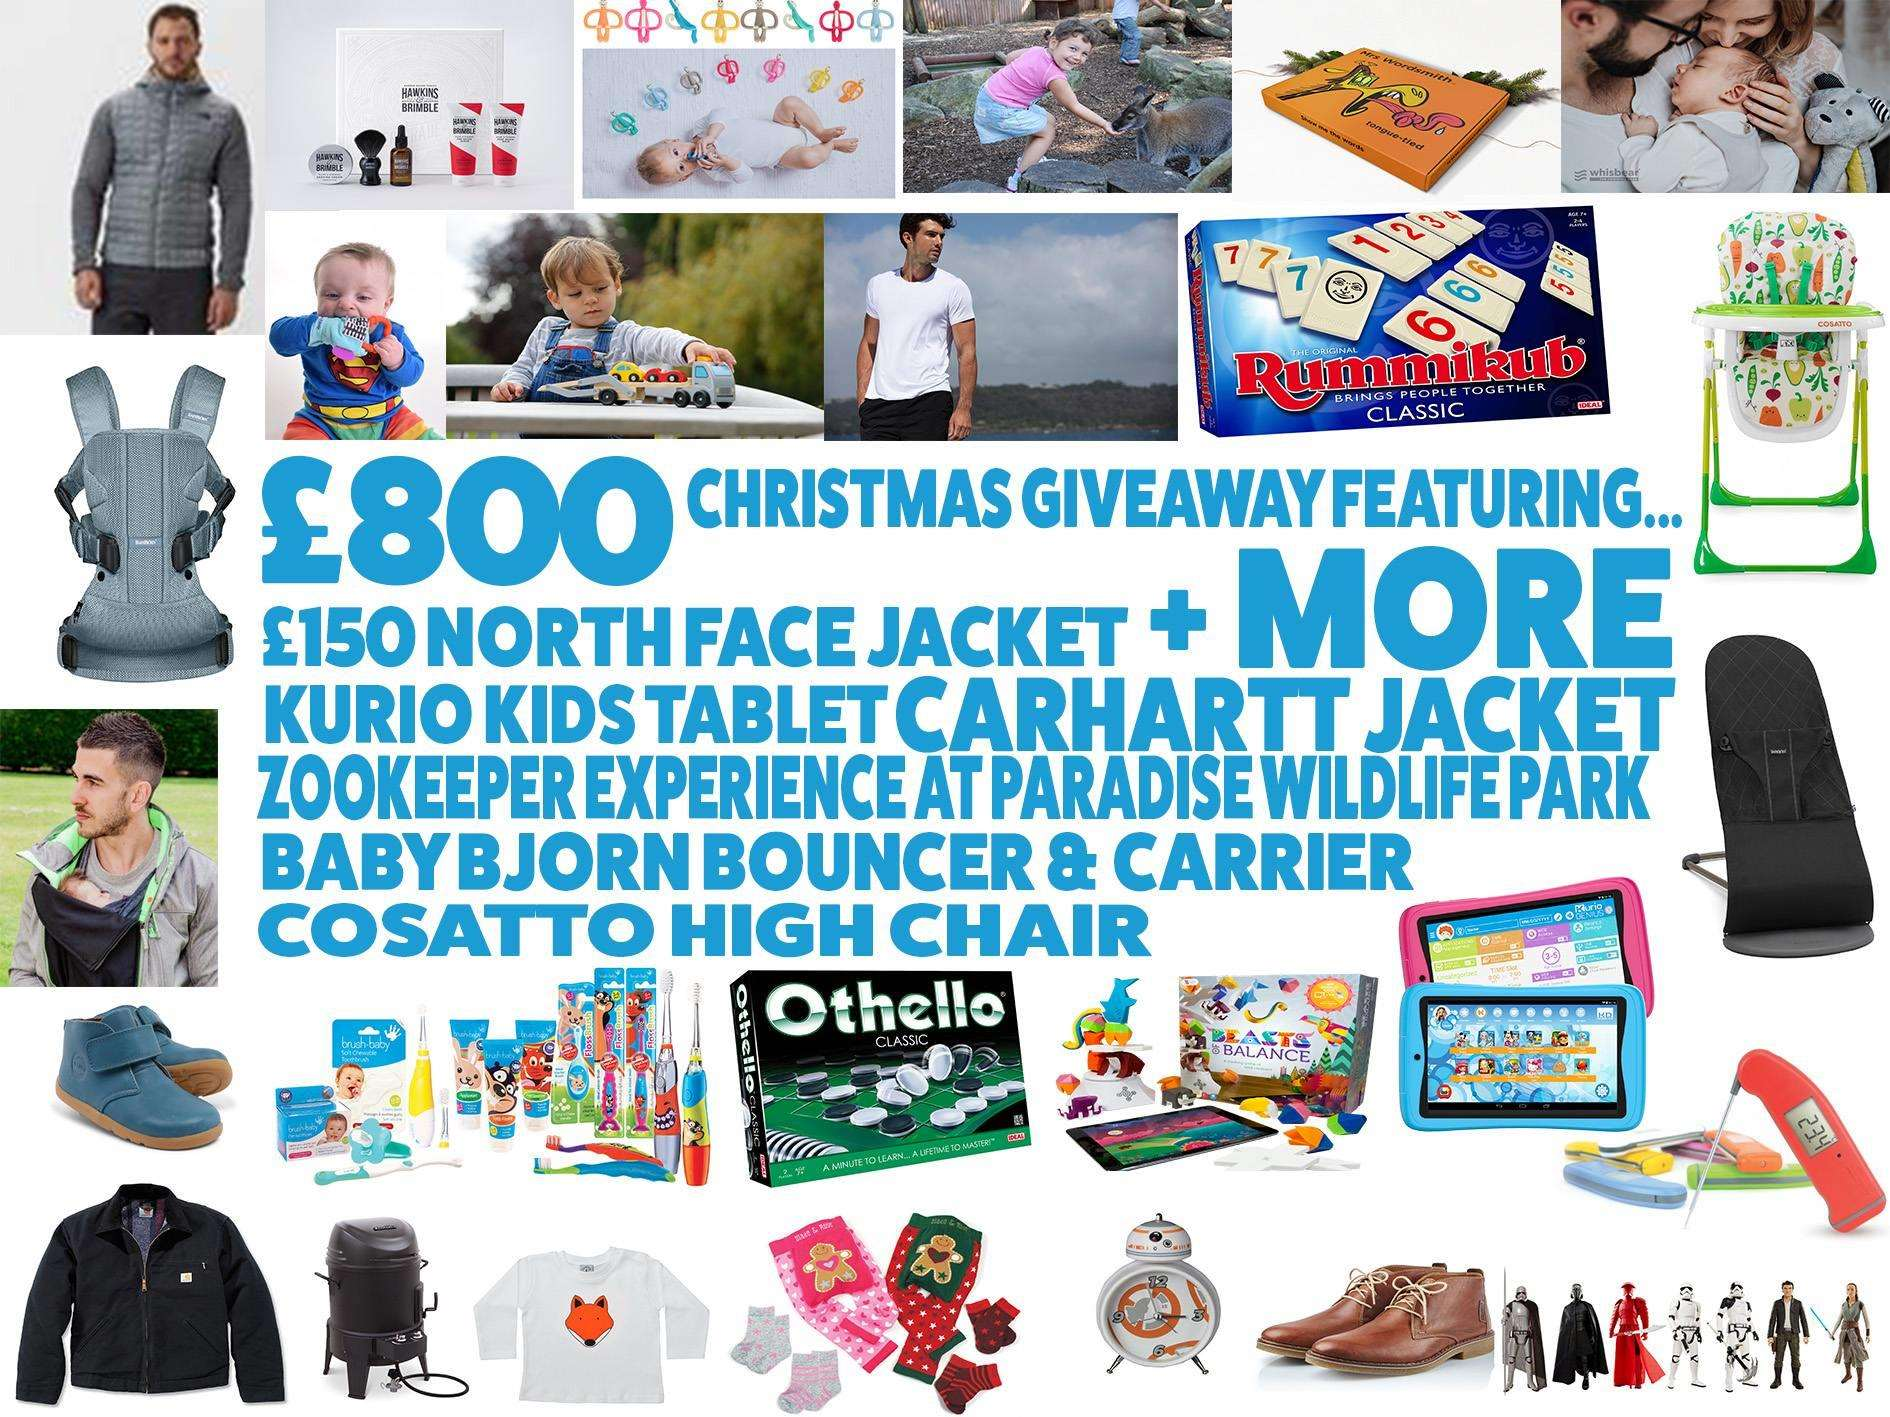 Huge Christmas Giveaway worth over £800, Untitled 1%, product-review%